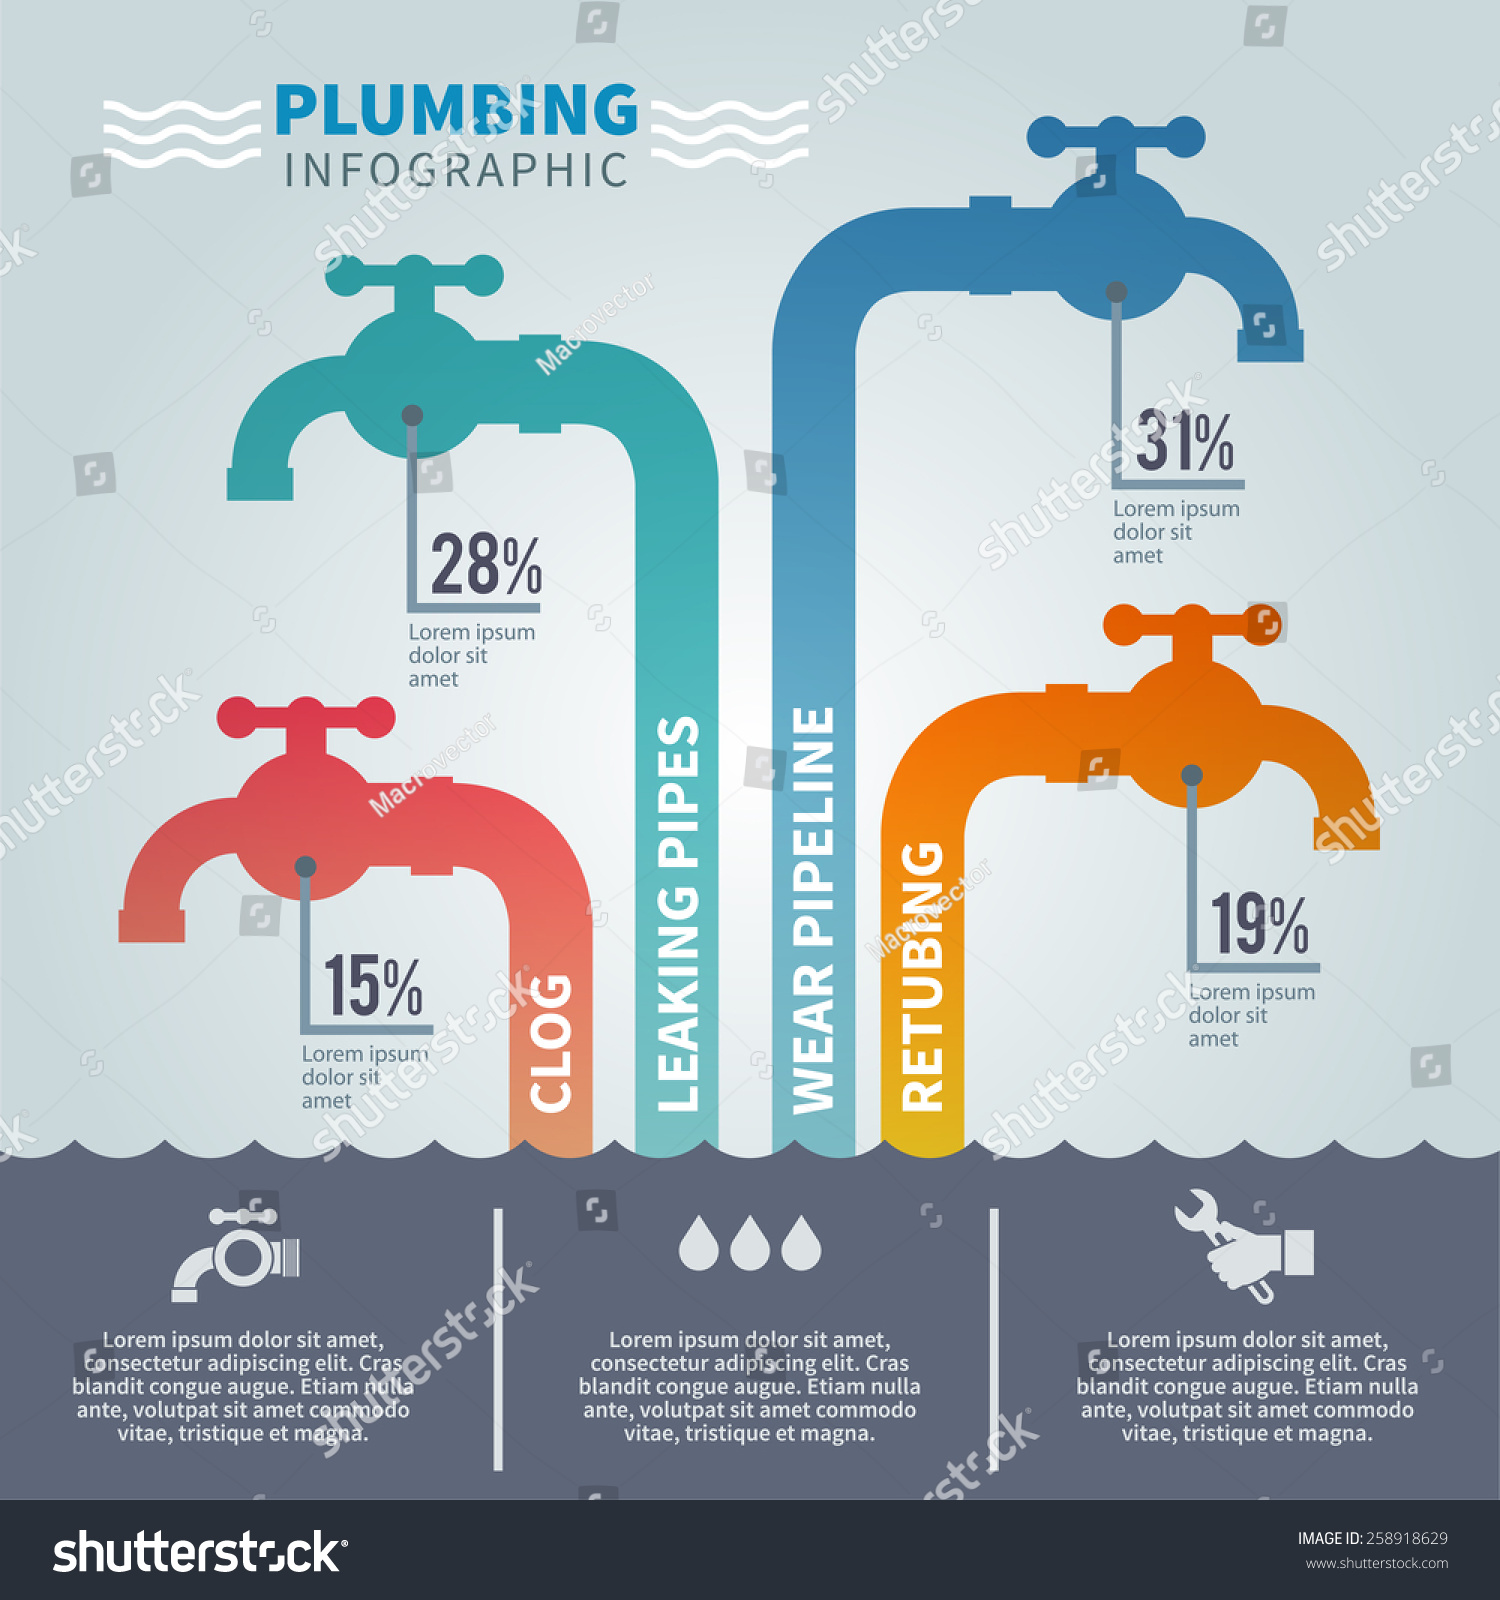 Plumbing Infographic Set Faucets Tube Fixture Stock Vector. State Of Michigan Llc Forms Ga Dui Attorney. Mobile Website Development Ugg Handbags Sale. In Vitro Fertilization Los Angeles. Free Electronic Medical Record Software. School Psychology Phd Programs. Maytag Refrigerator Repairs Garage Door Inc. Hard Money Loans Sacramento Owens Soft Water. Limousine Service In San Francisco Ca